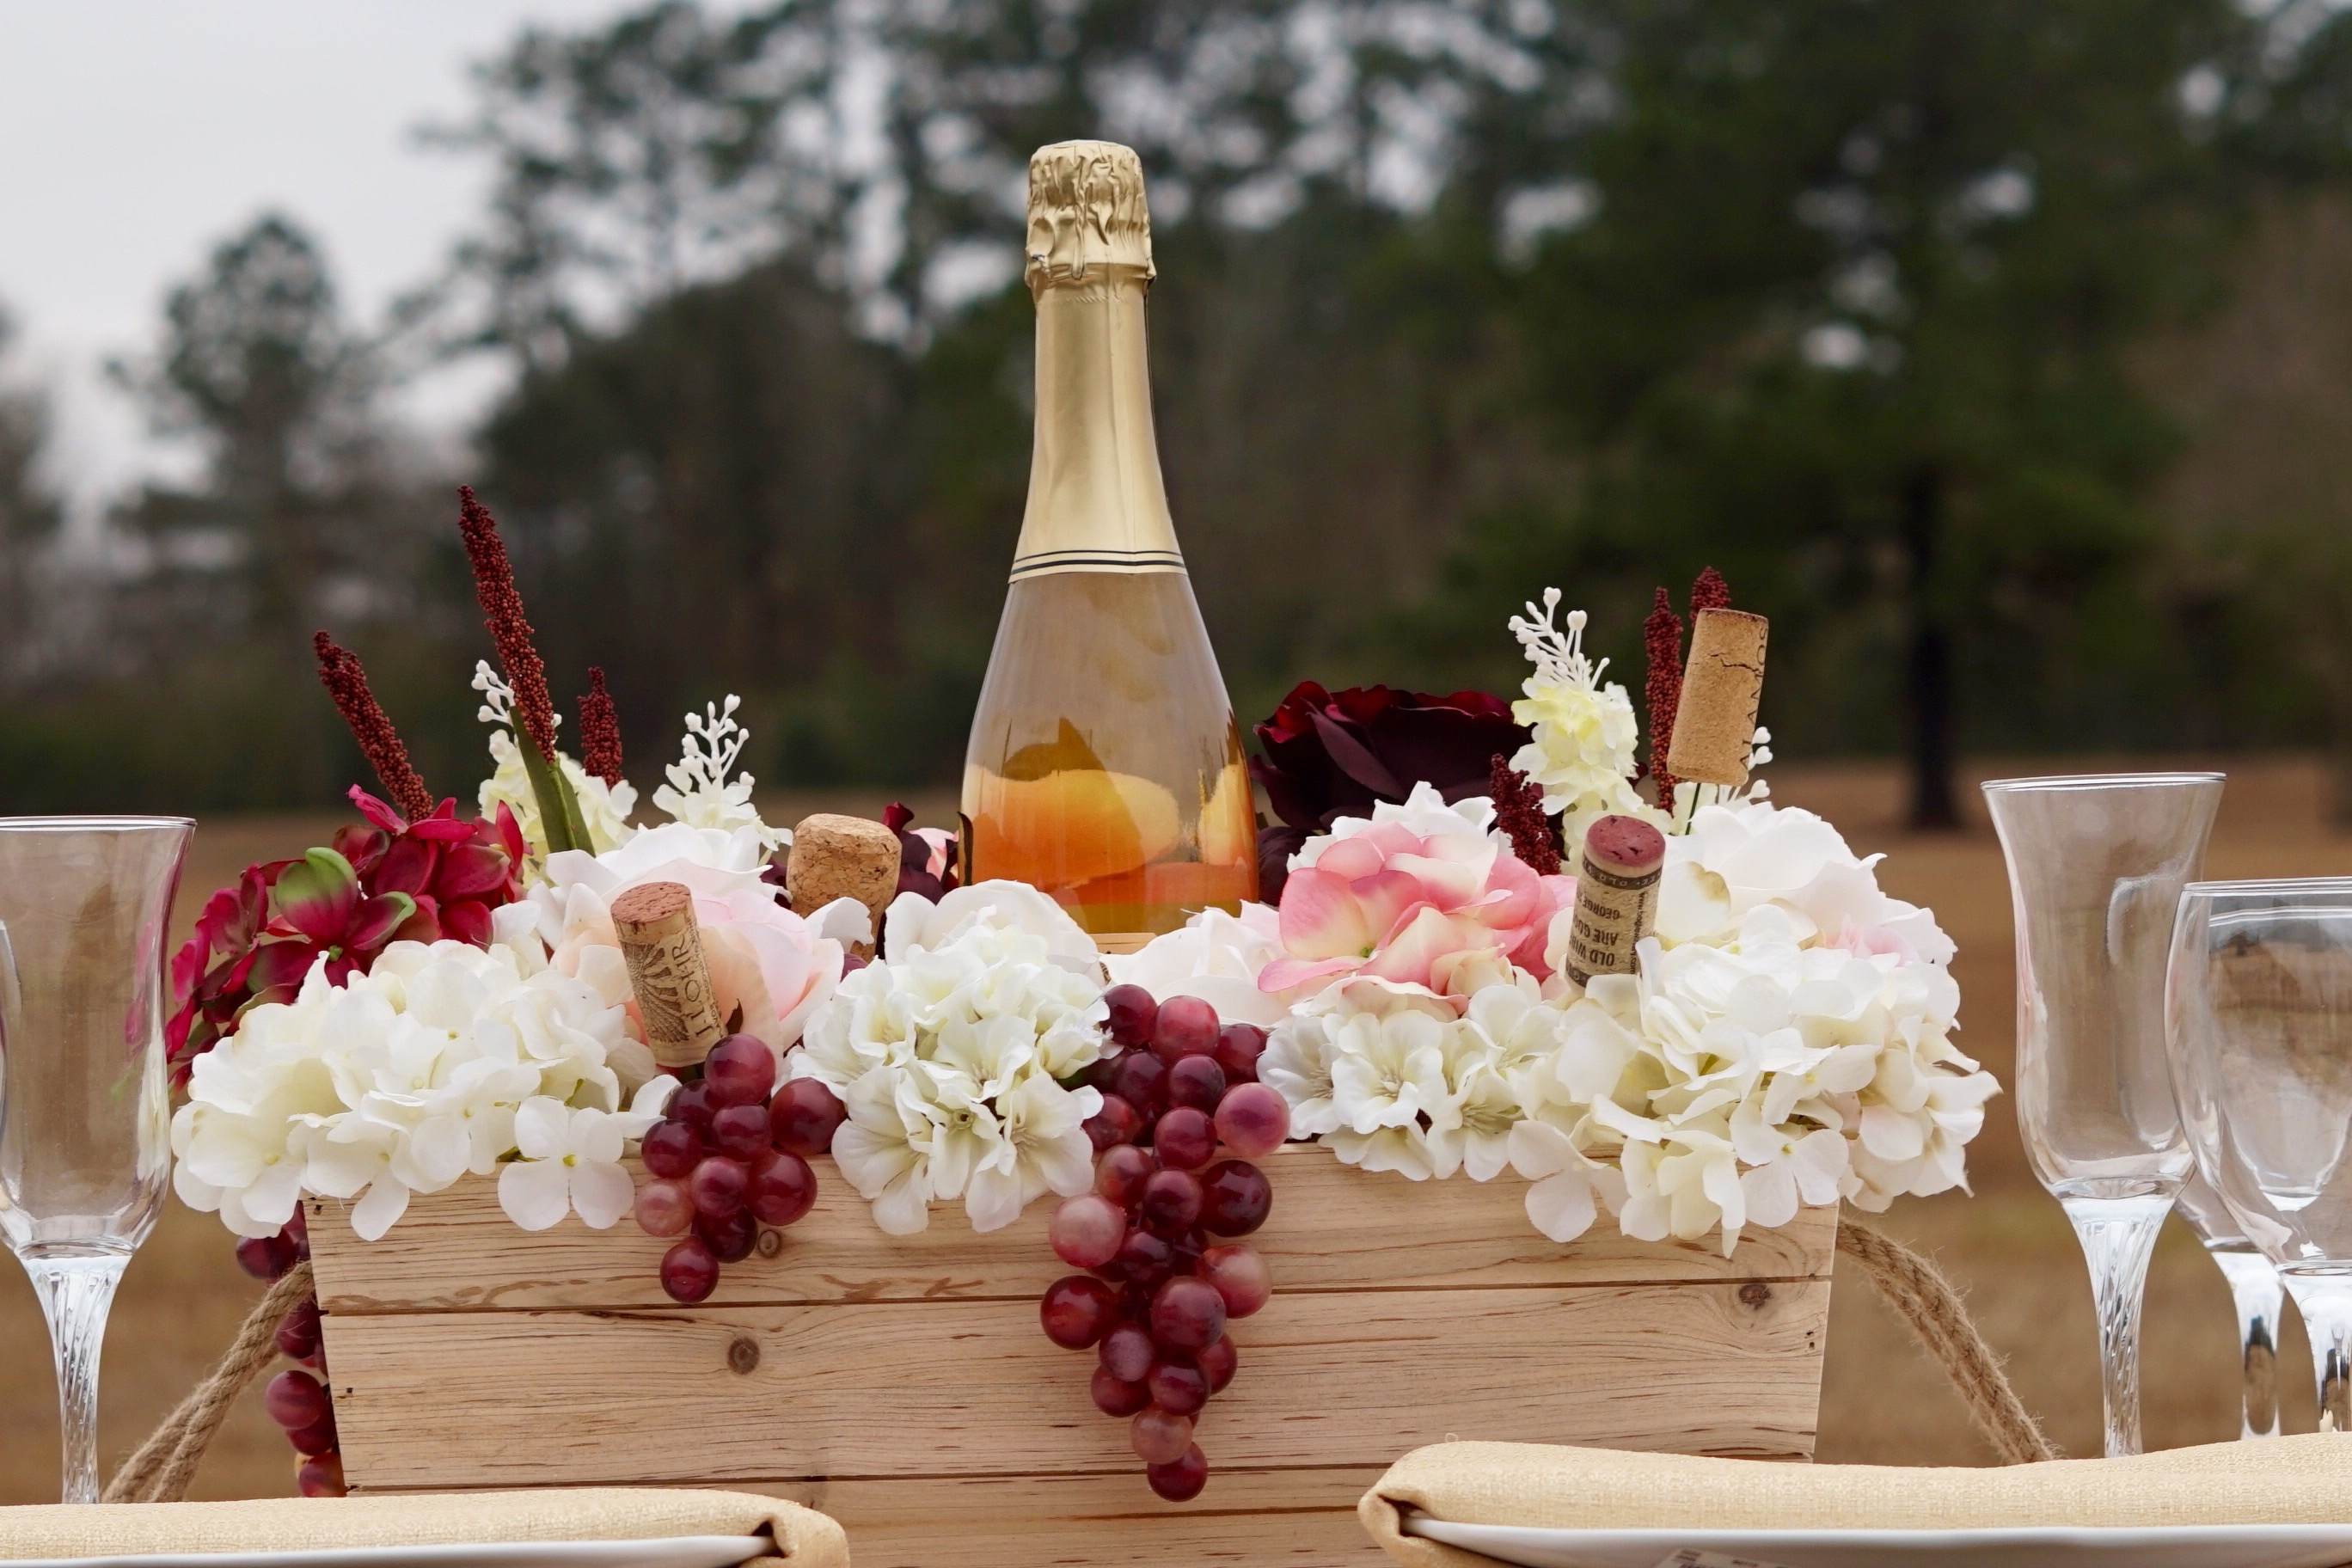 Rustic Wine Themed Wooden Crate DIY Wedding Centerpiece